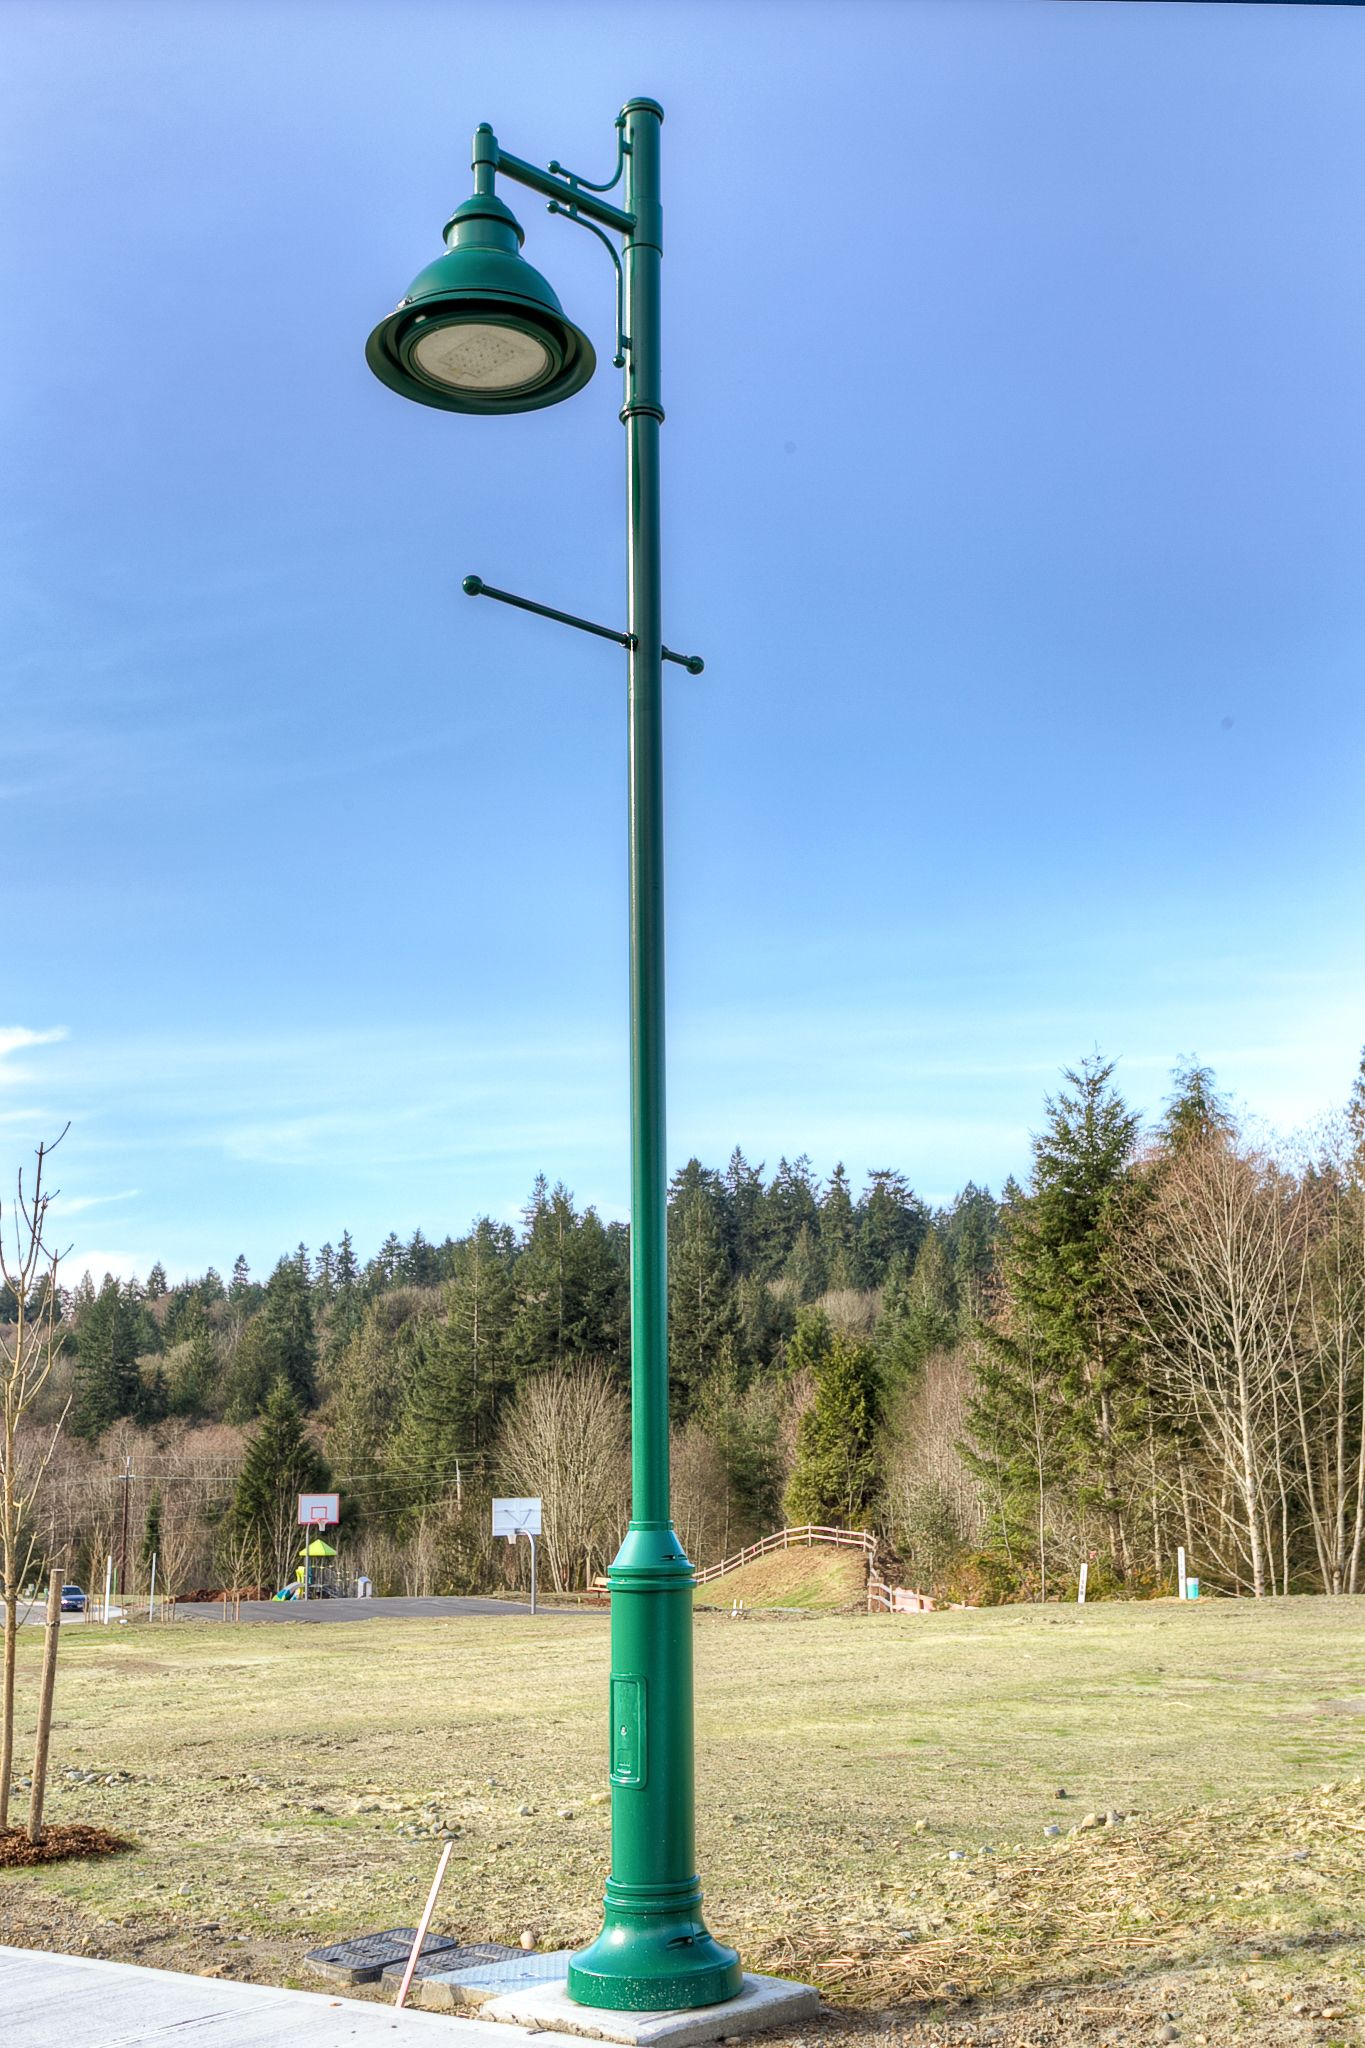 Old Fashioned Street Lights Add Charm To The Mccormick